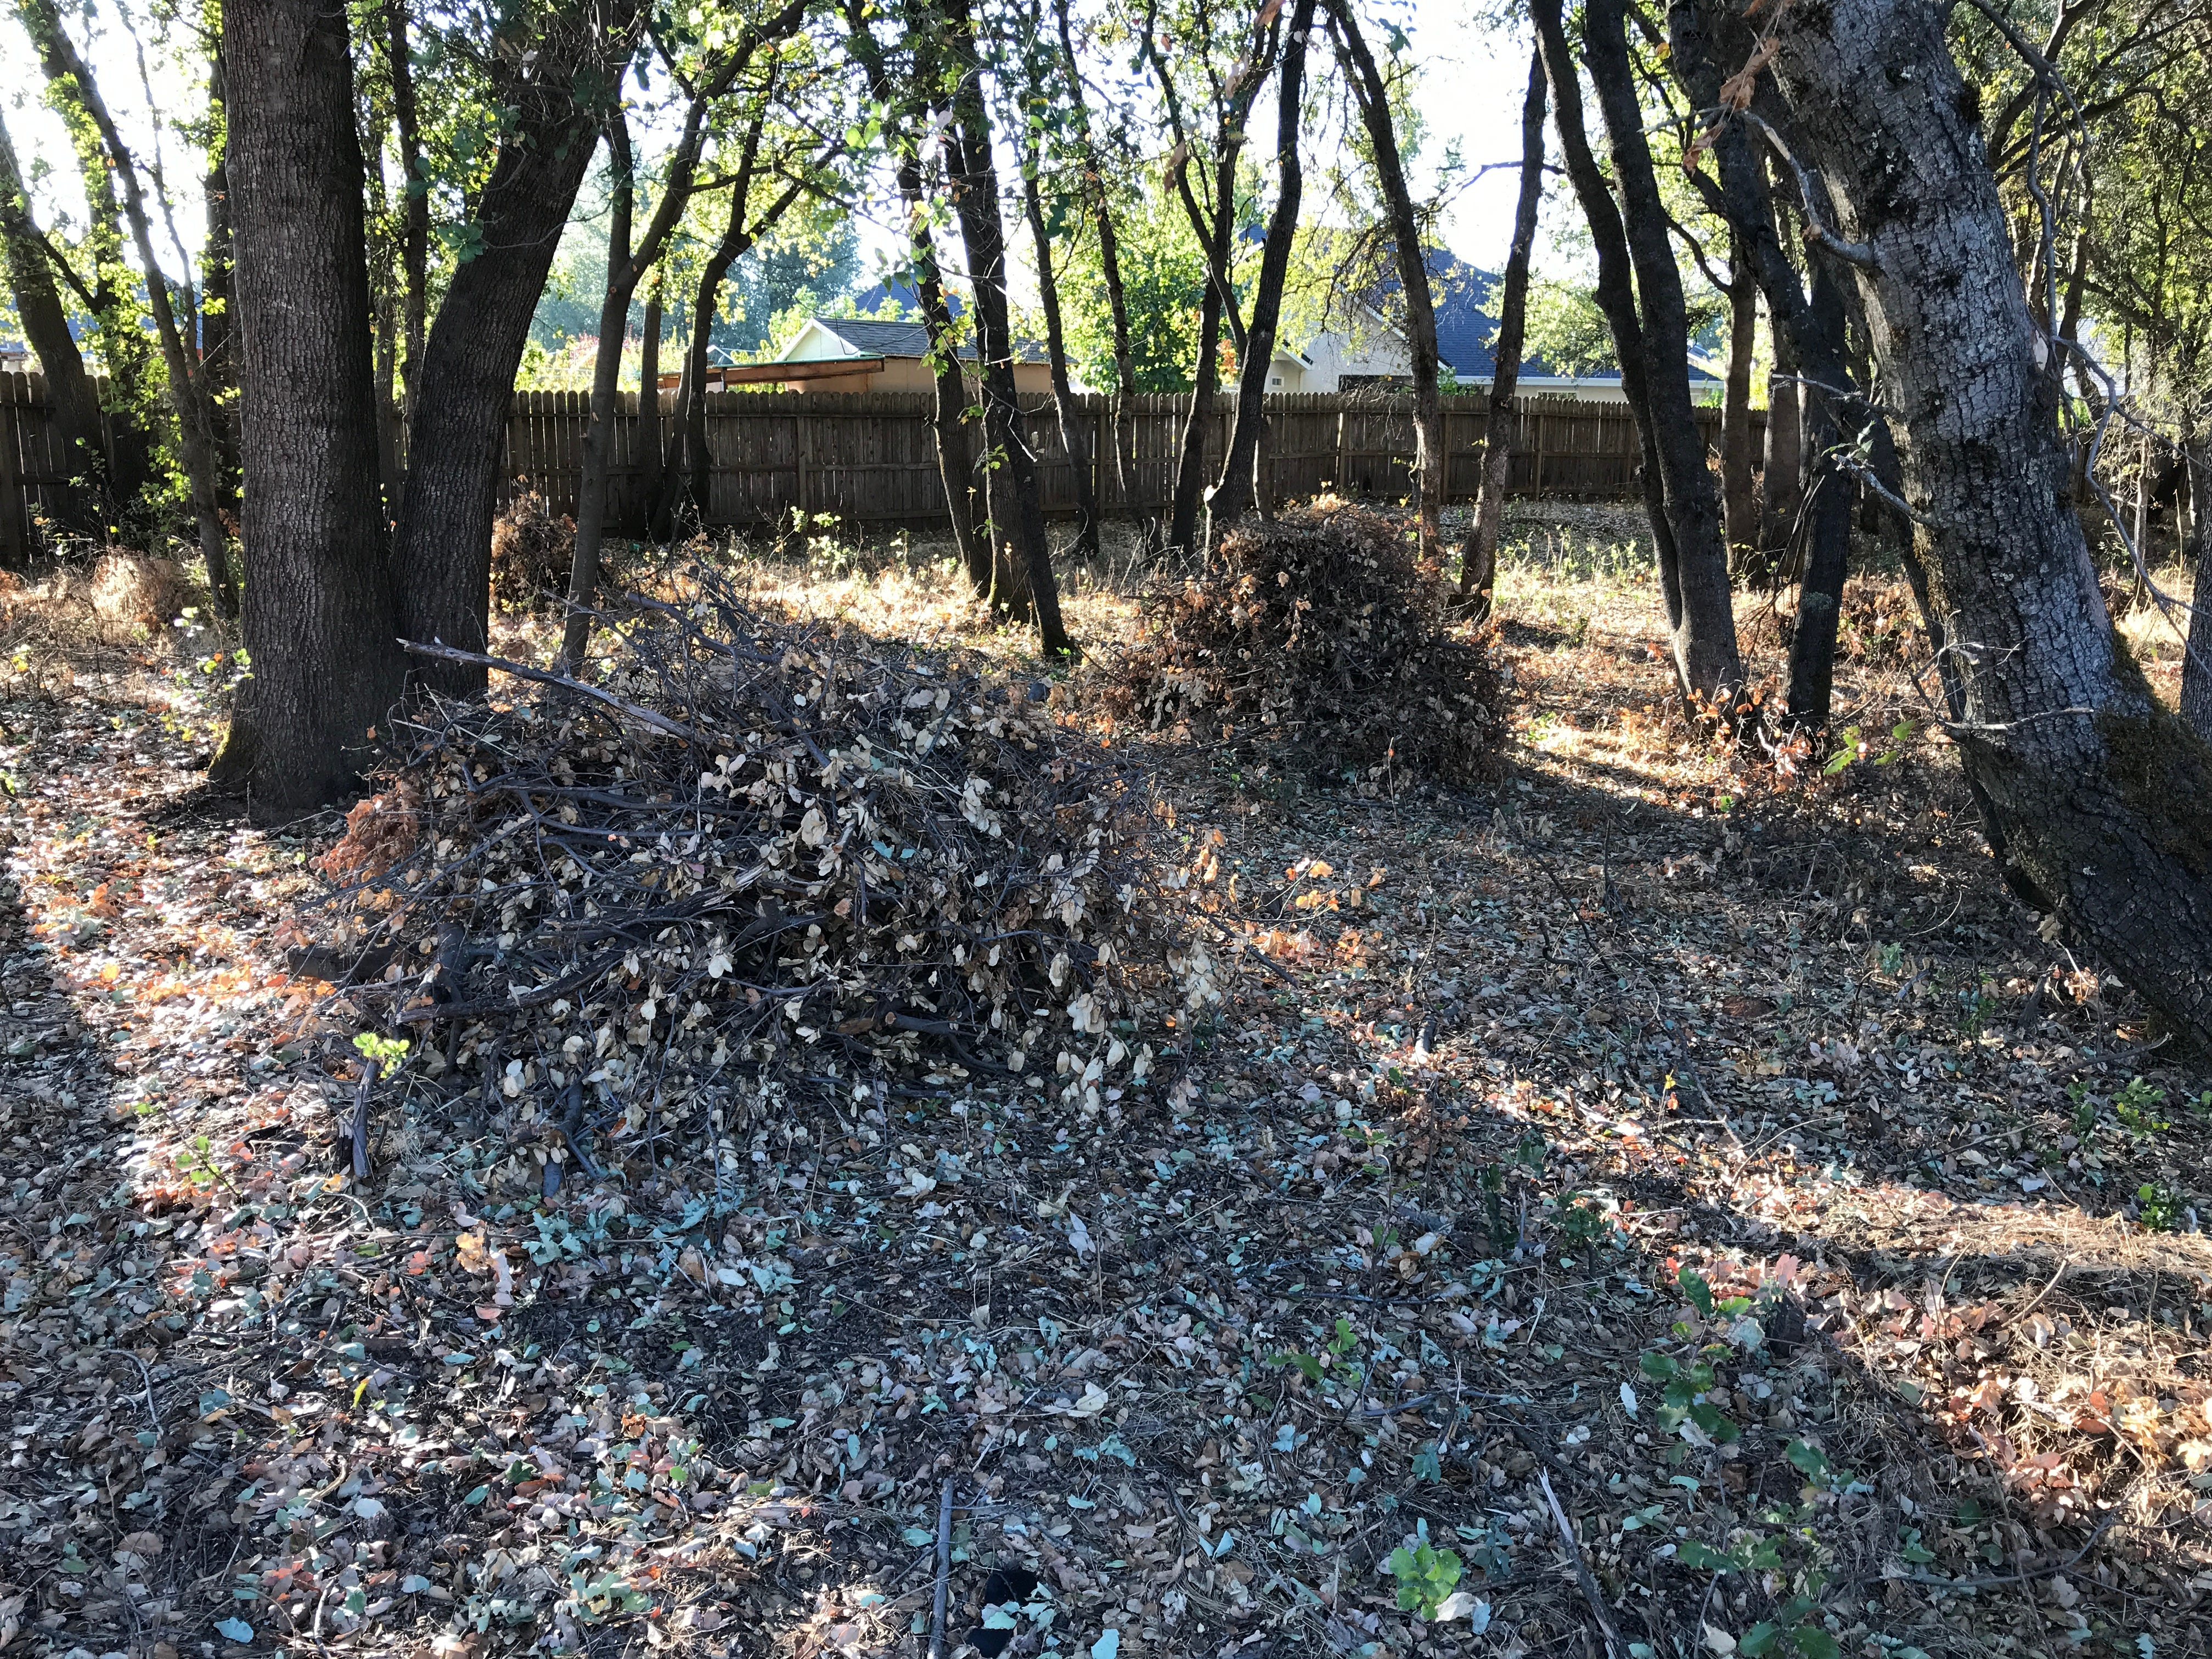 Brush piles sit at an 11-acre plot of city-owned open space off Goodwater Avenue and Penrod Way following a brush-clearing project.